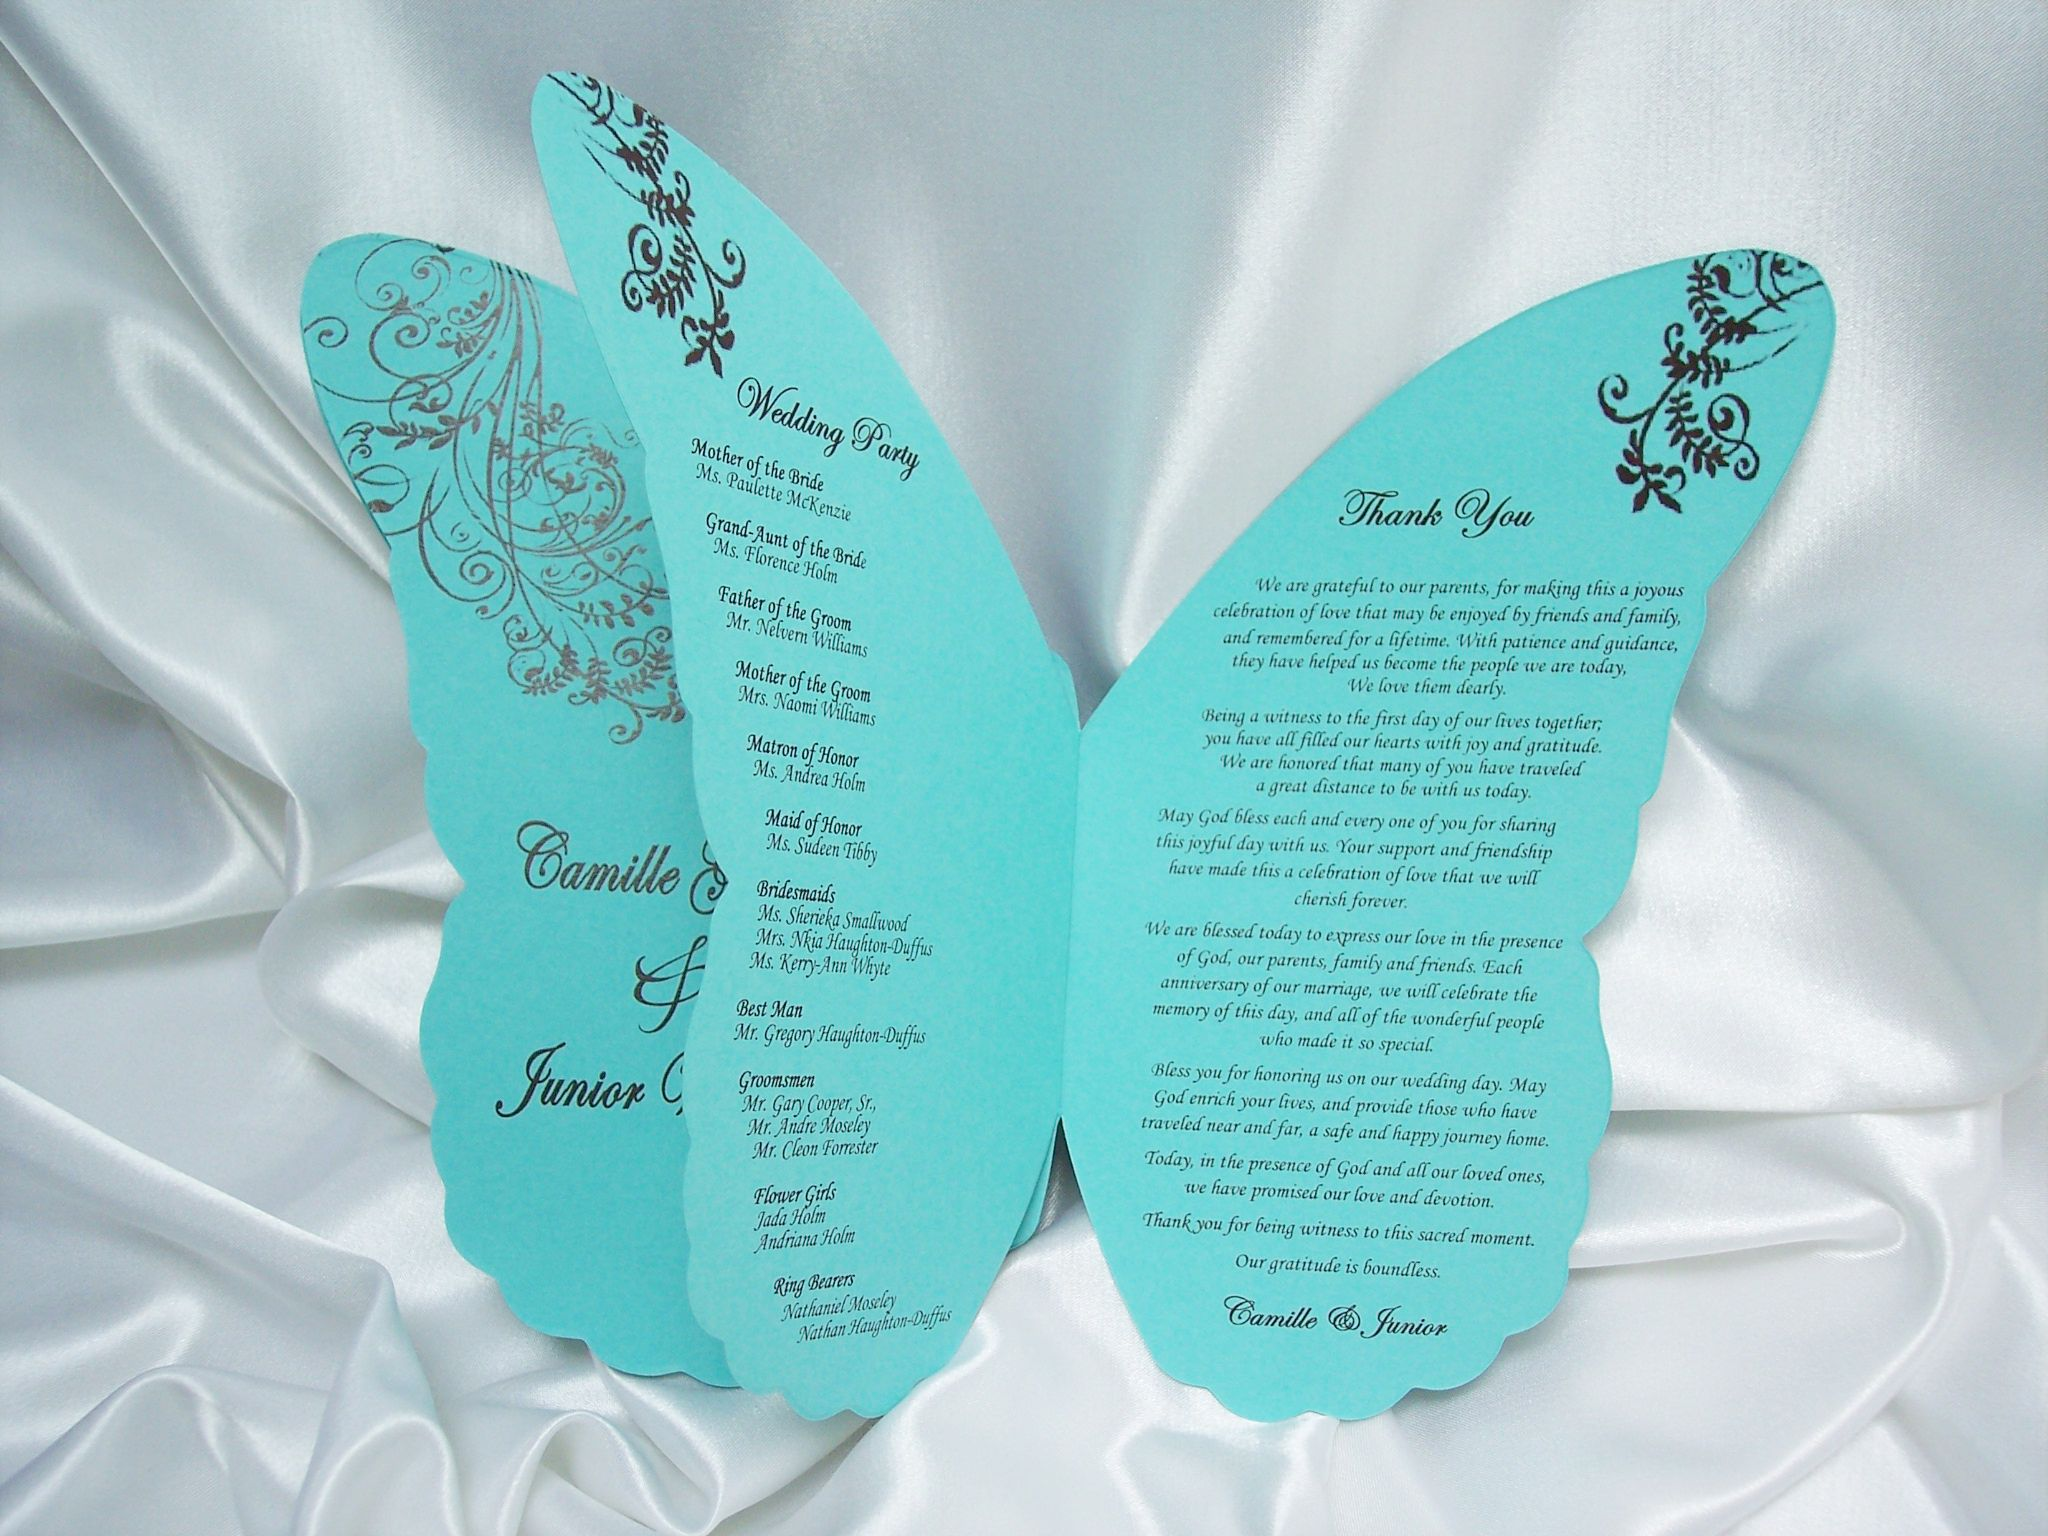 www.butterflies wedding inventations | invitation templates ...